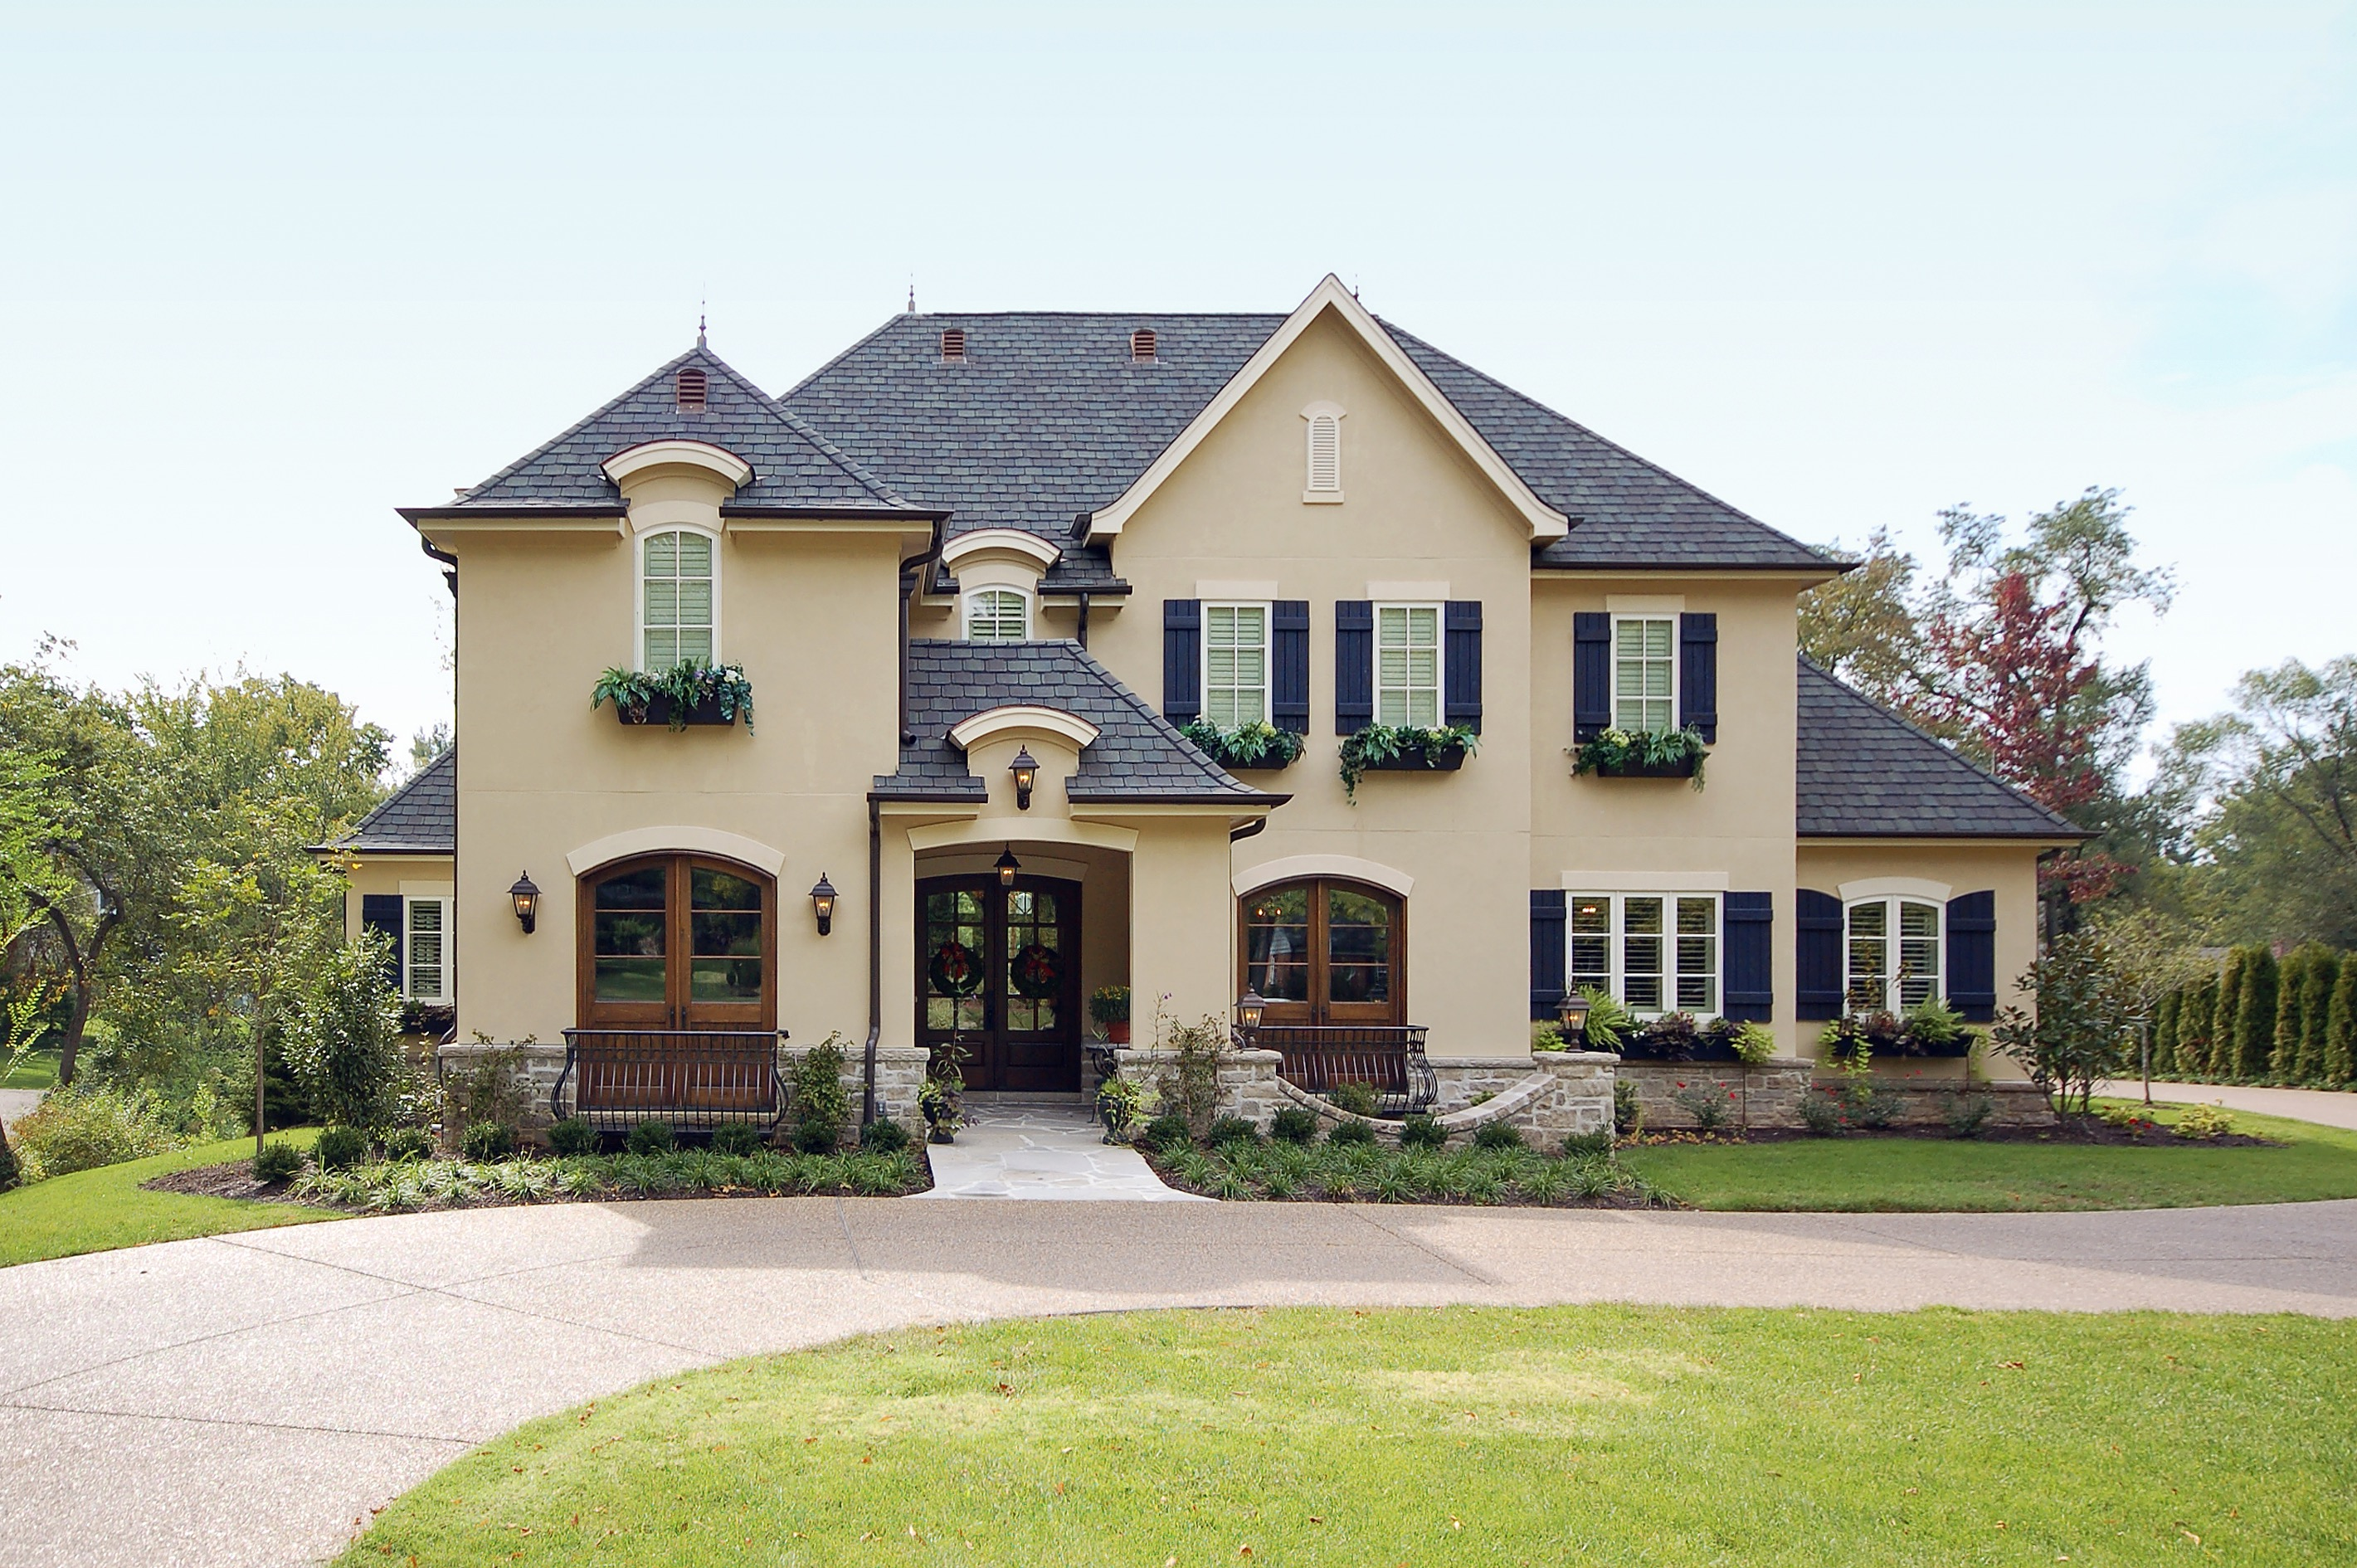 french country house exterior - Country Home Exterior